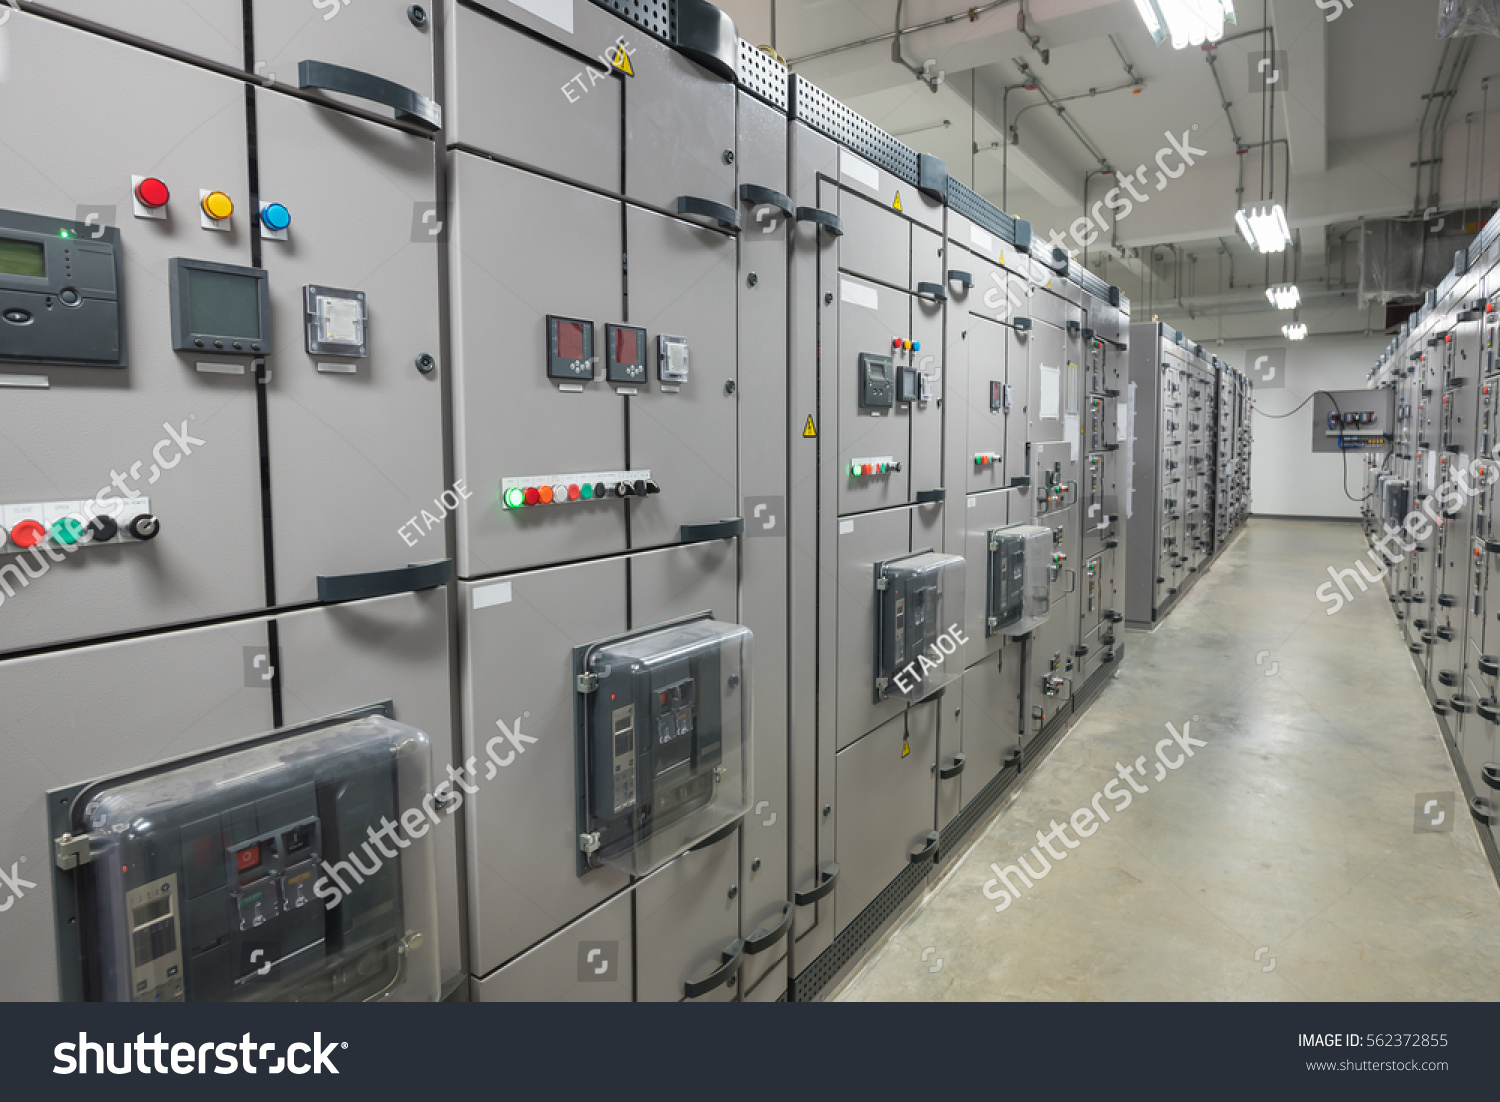 Electrical Switchgear Industrial Electrical Switch Panel Power Stock ...